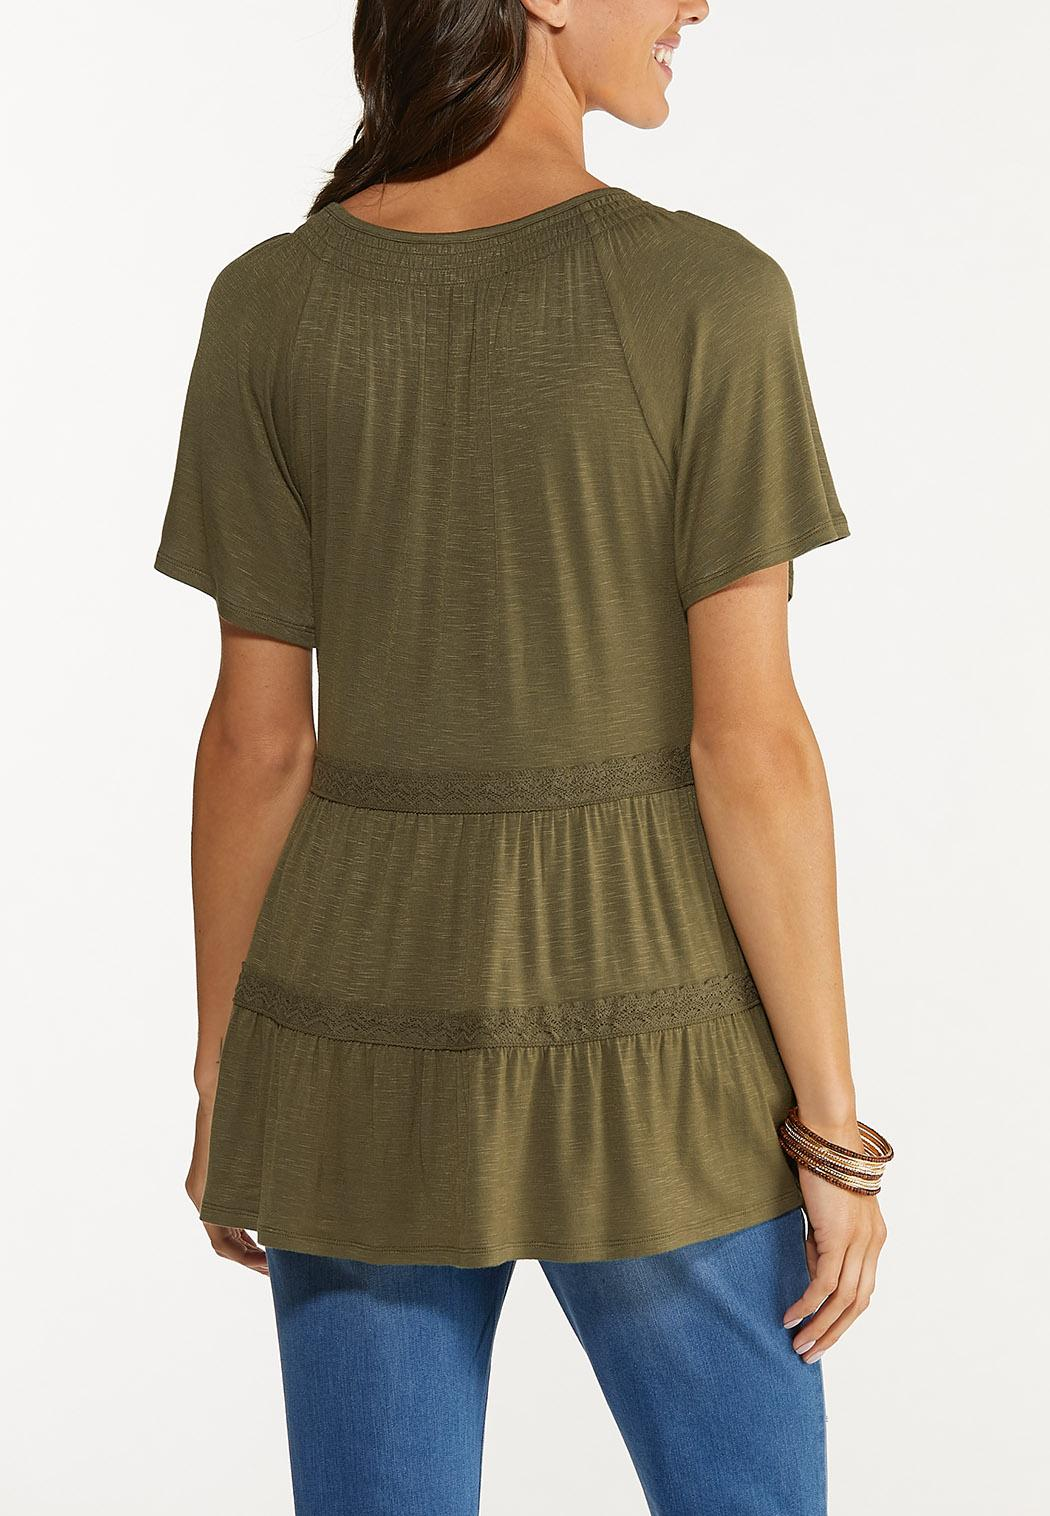 Plus Size Olive Tiered Top (Item #44648702)